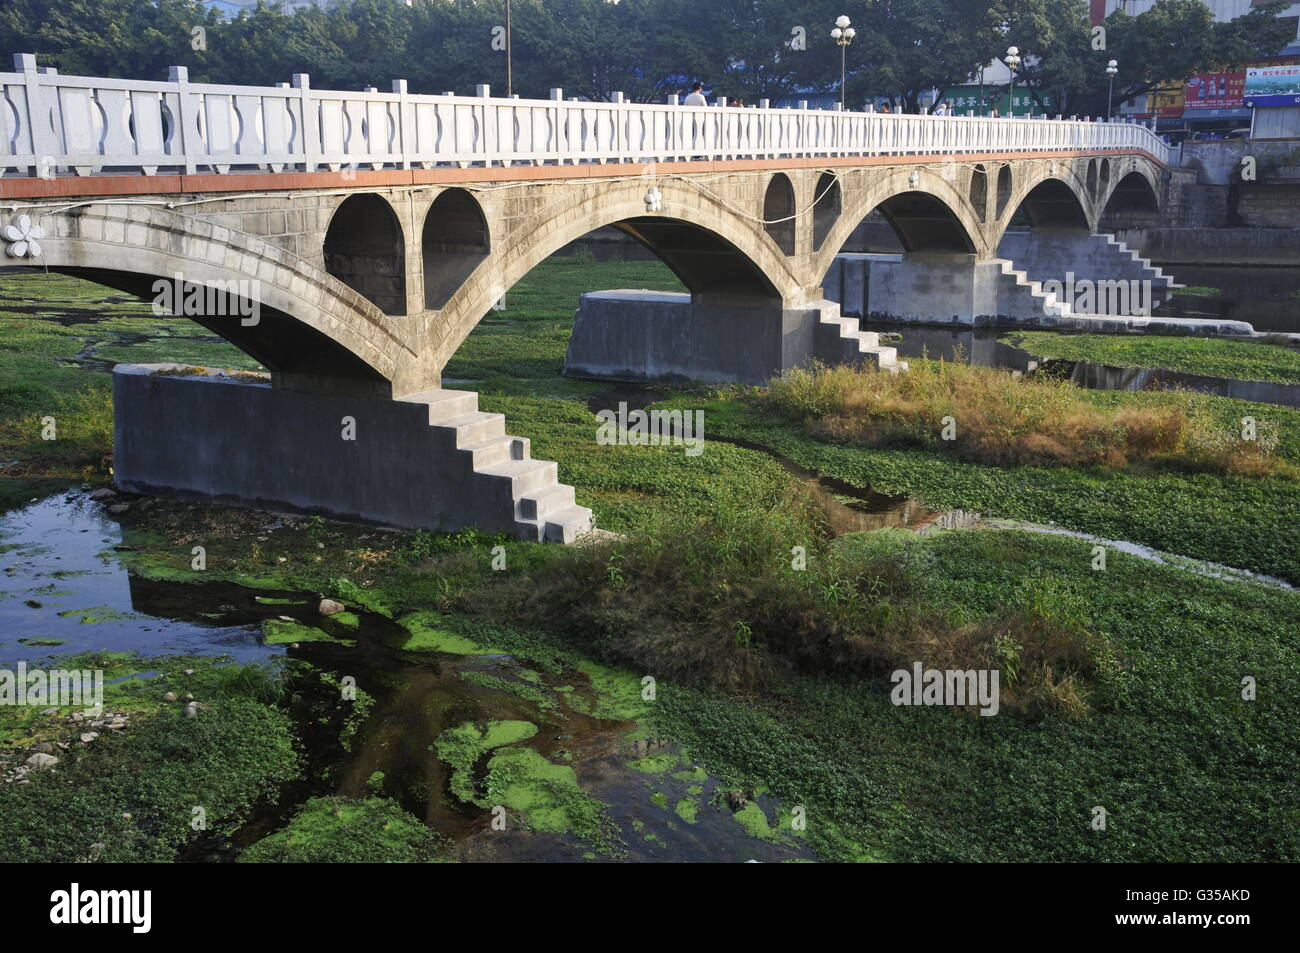 Bridge Over Stone River in LongYan, Fujian, China - Stock Image